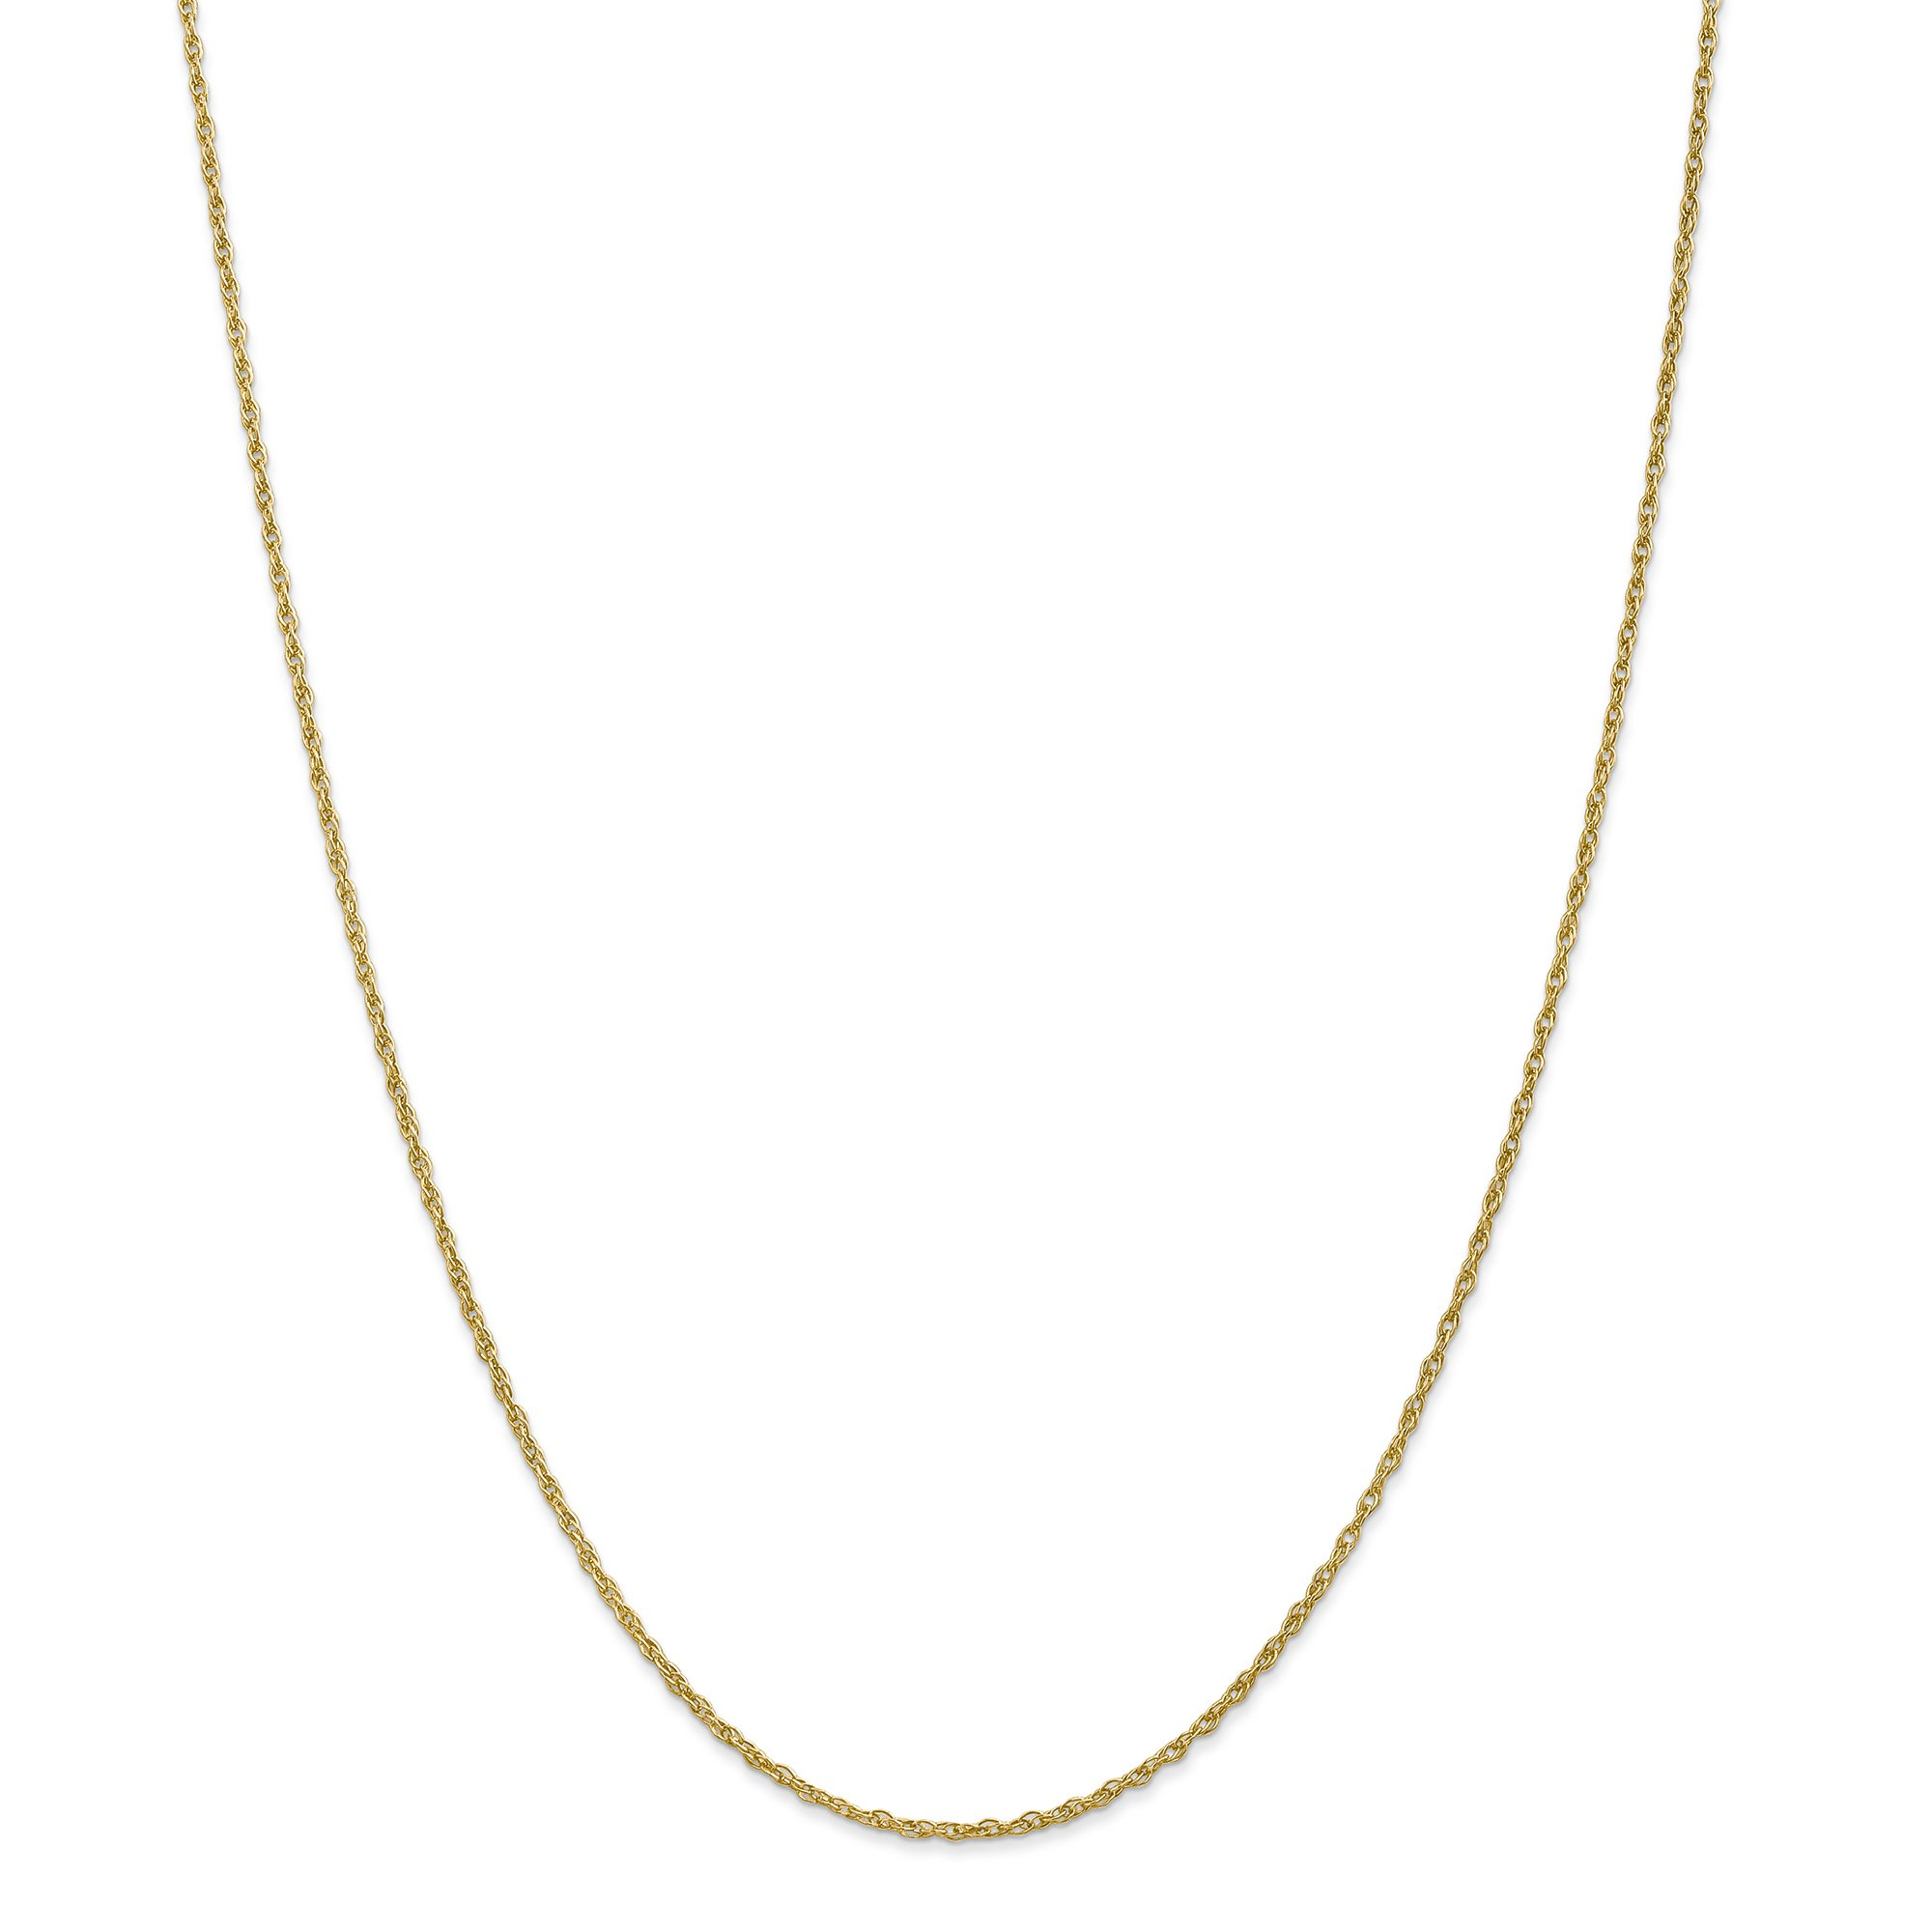 ICE CARATS 18k1.3mm Heavy Baby Link Rope Chain Necklace 24 Inch